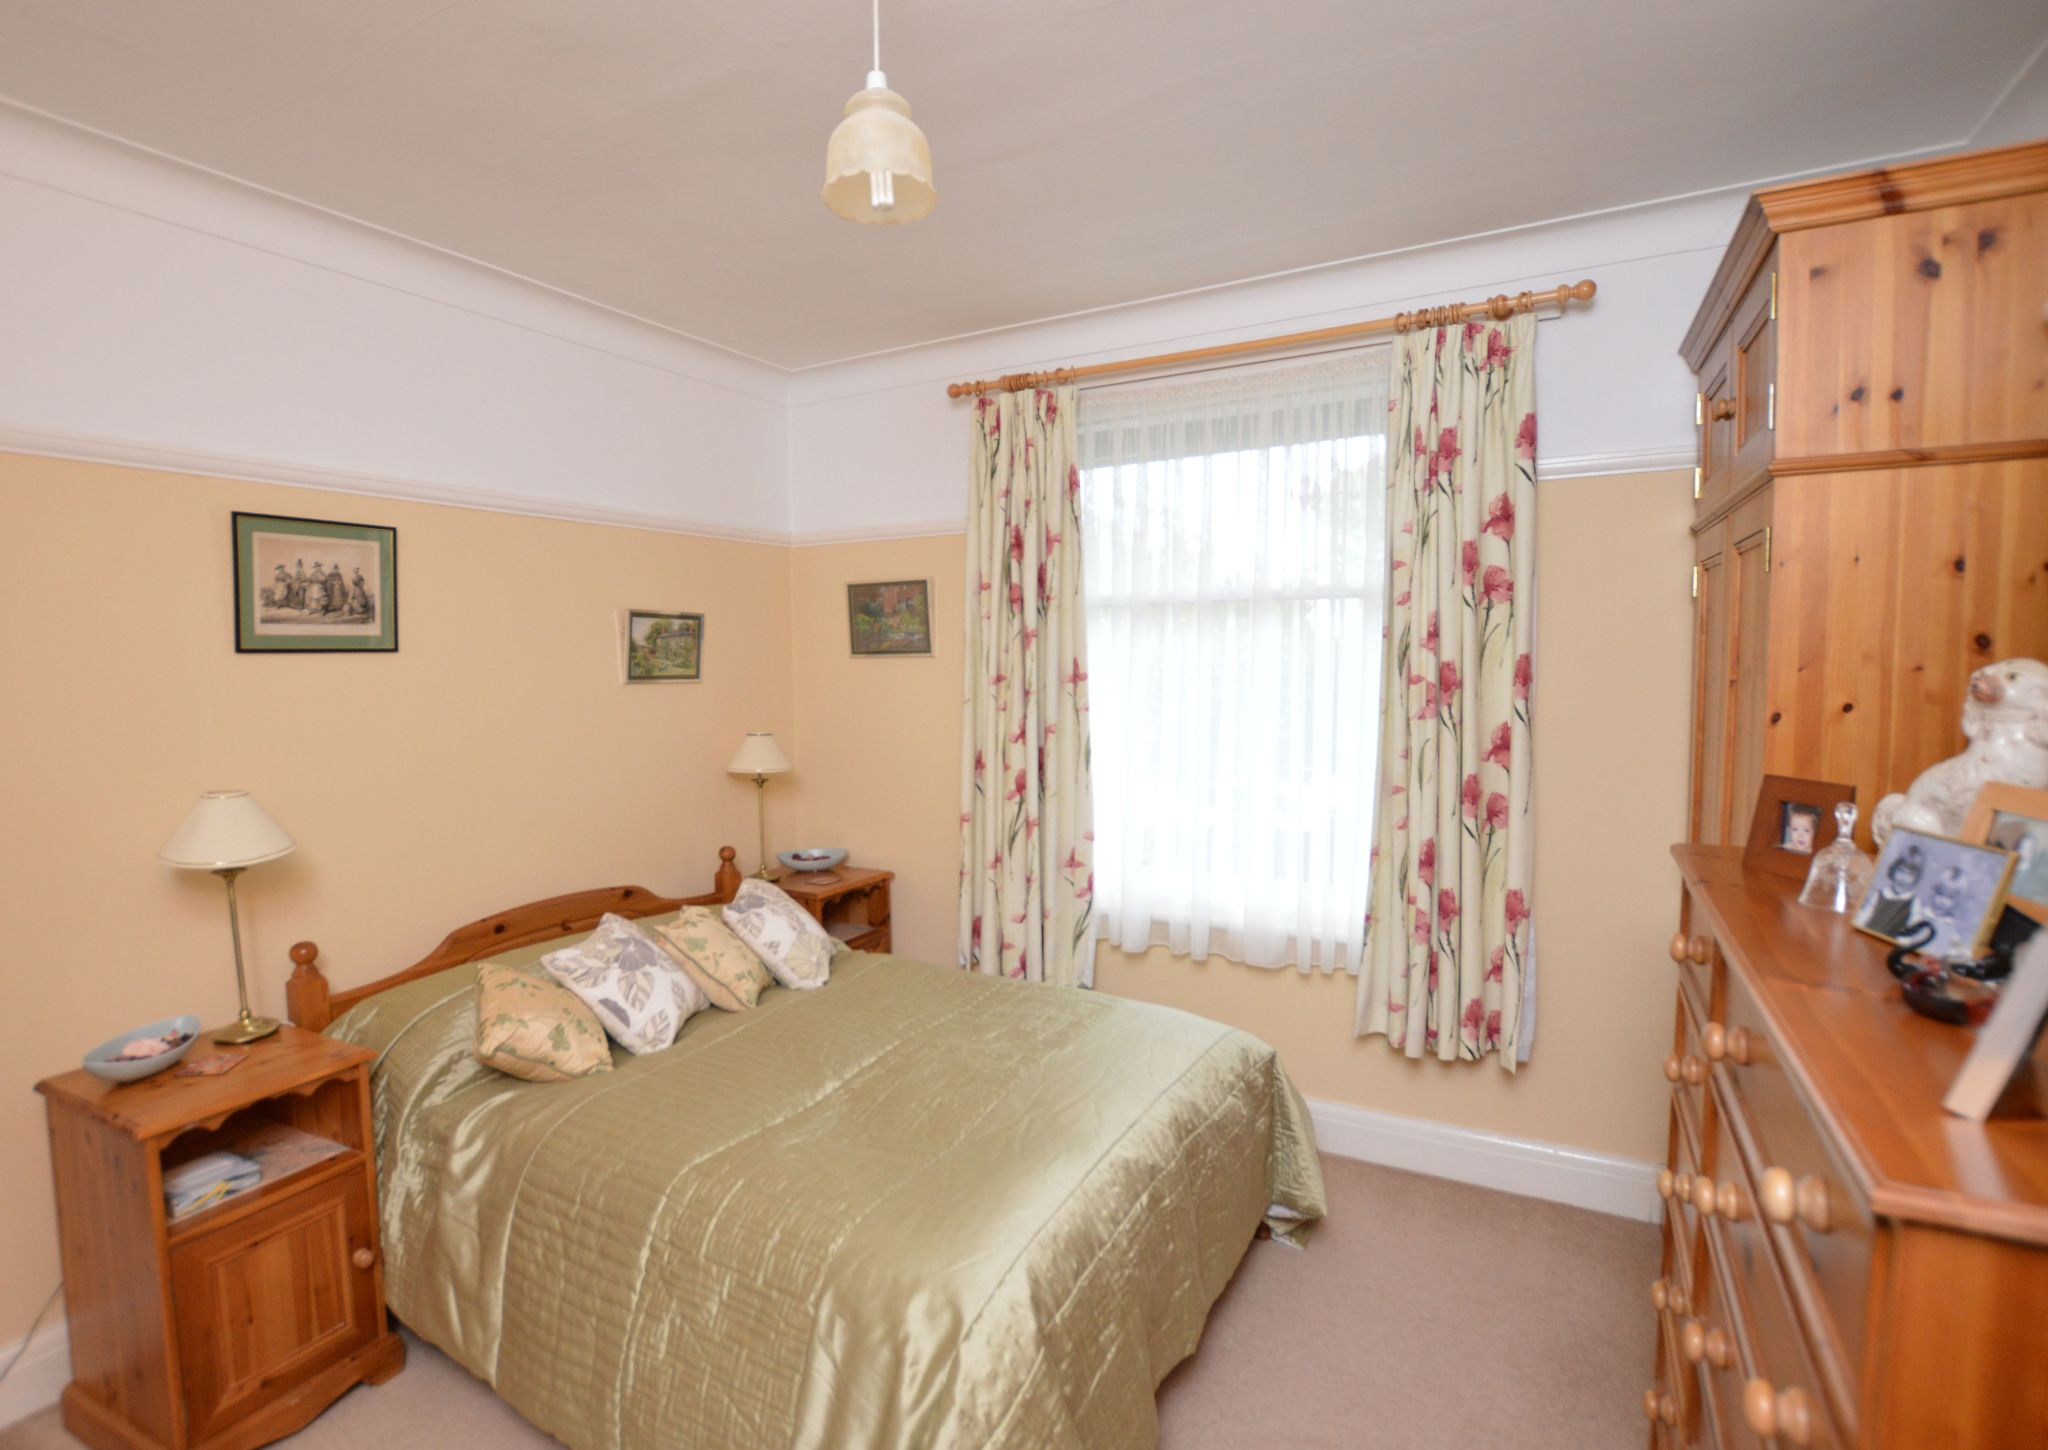 4 bedroom detached bungalow For Sale in Abergele - Bedroom 3 View 2